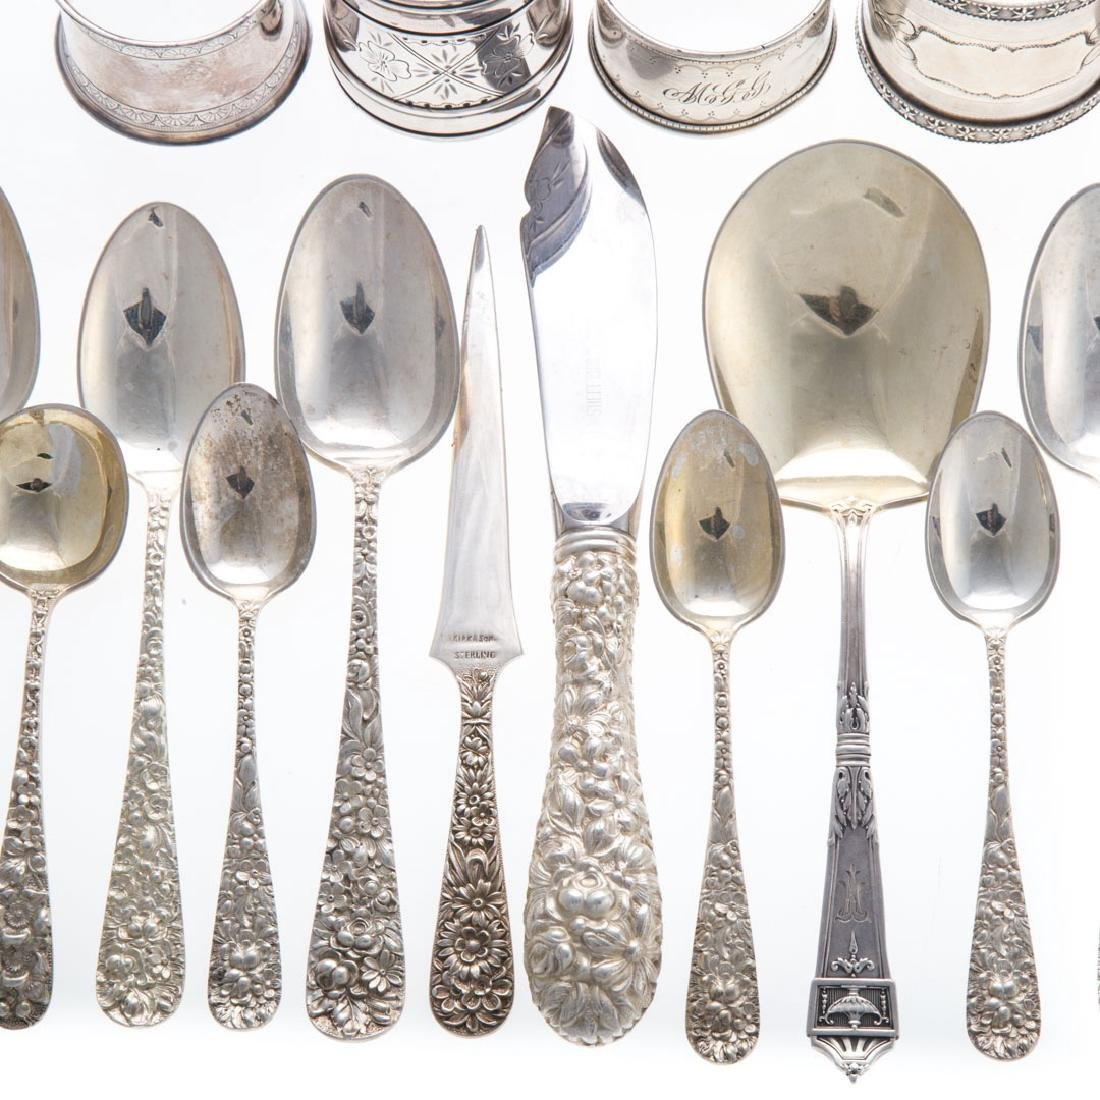 Assorted silver flatware and napkin rings - 2